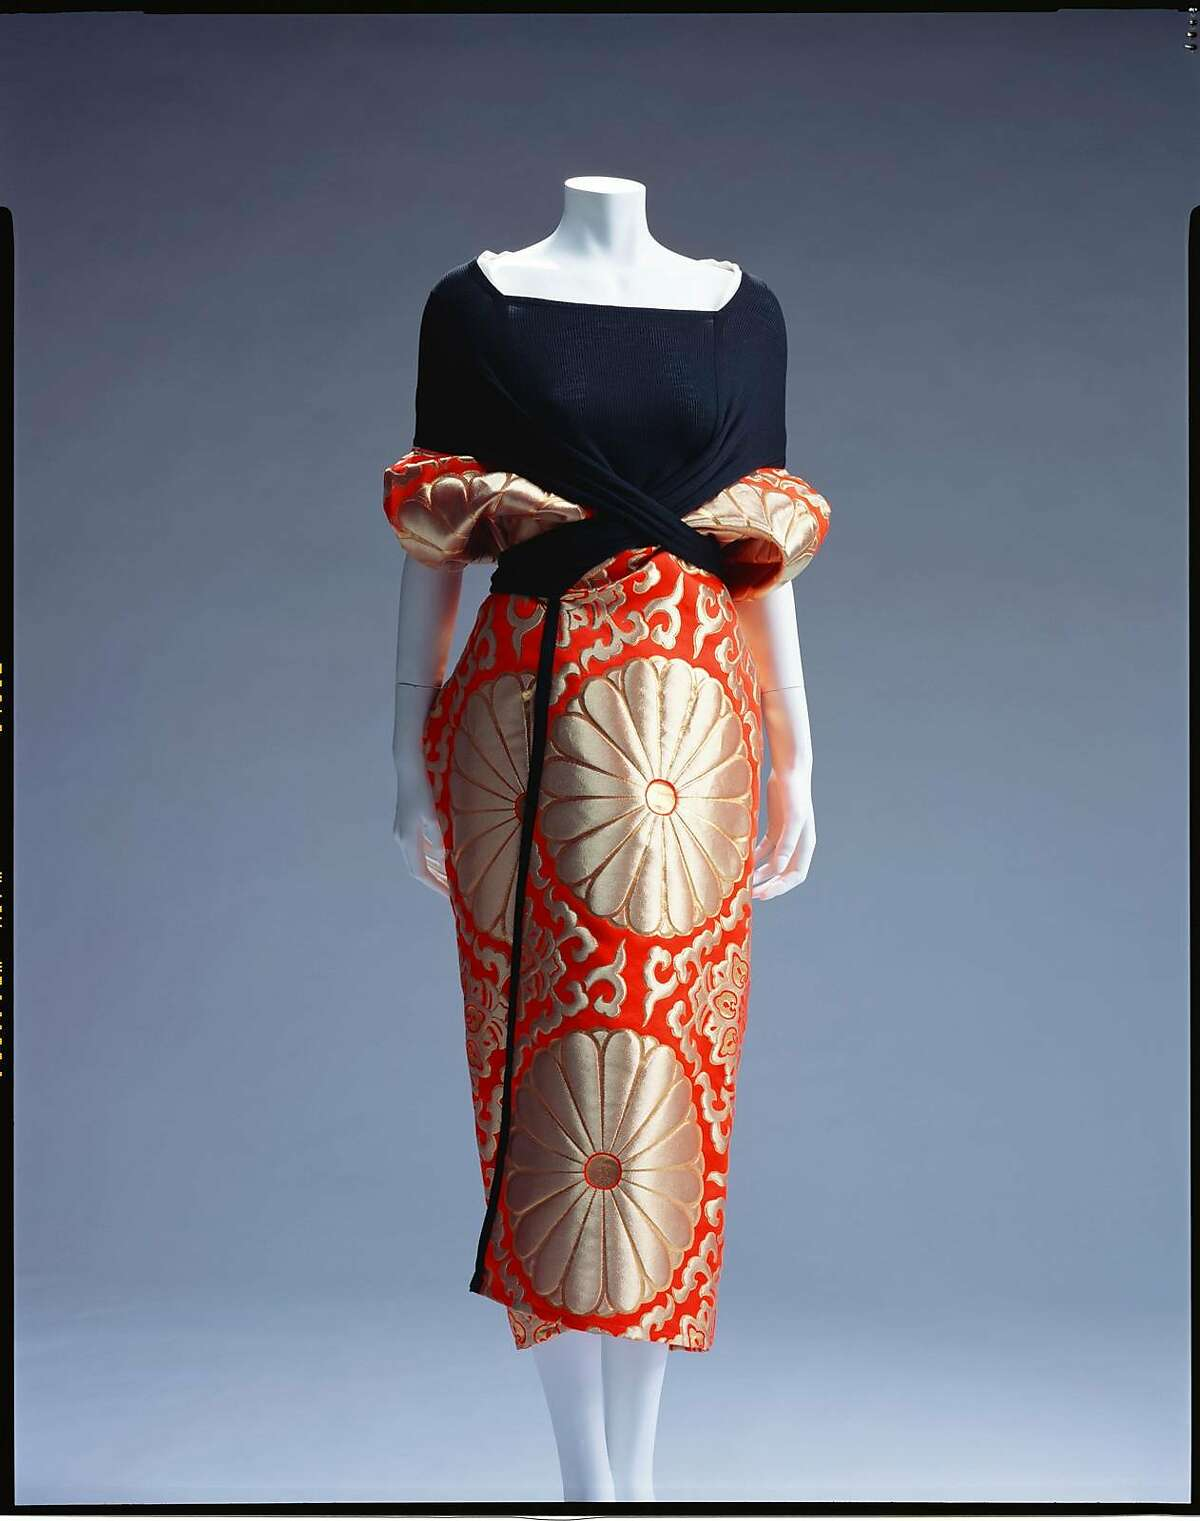 Dress, Spring/Summer 1995, by Yohji Yamamoto (Japanese, b. 1943). Silk/rayon-blend jersey and polyester/rayon/nylon-blend brocade.�Collection of The Kyoto Costume Institute.